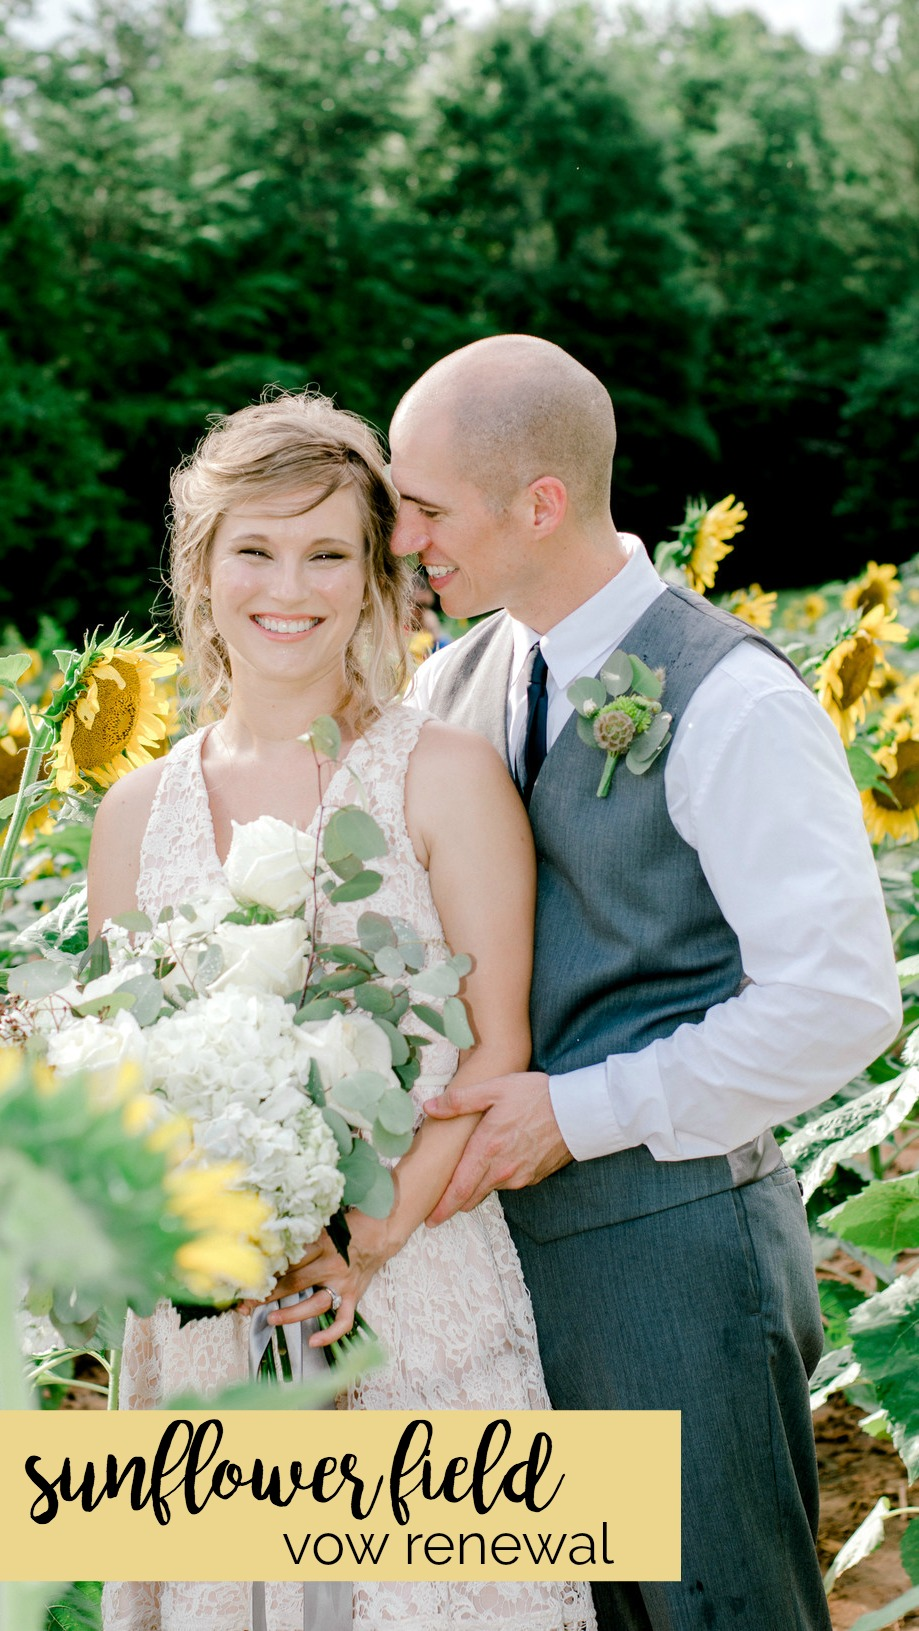 Lauren and Chris: Sunflower Farm Wedding and Surprise Vow Renewal | Palmetto State Weddings | Jessica Drew Photography | South Carolina weddings | outdoor wedding inspiration